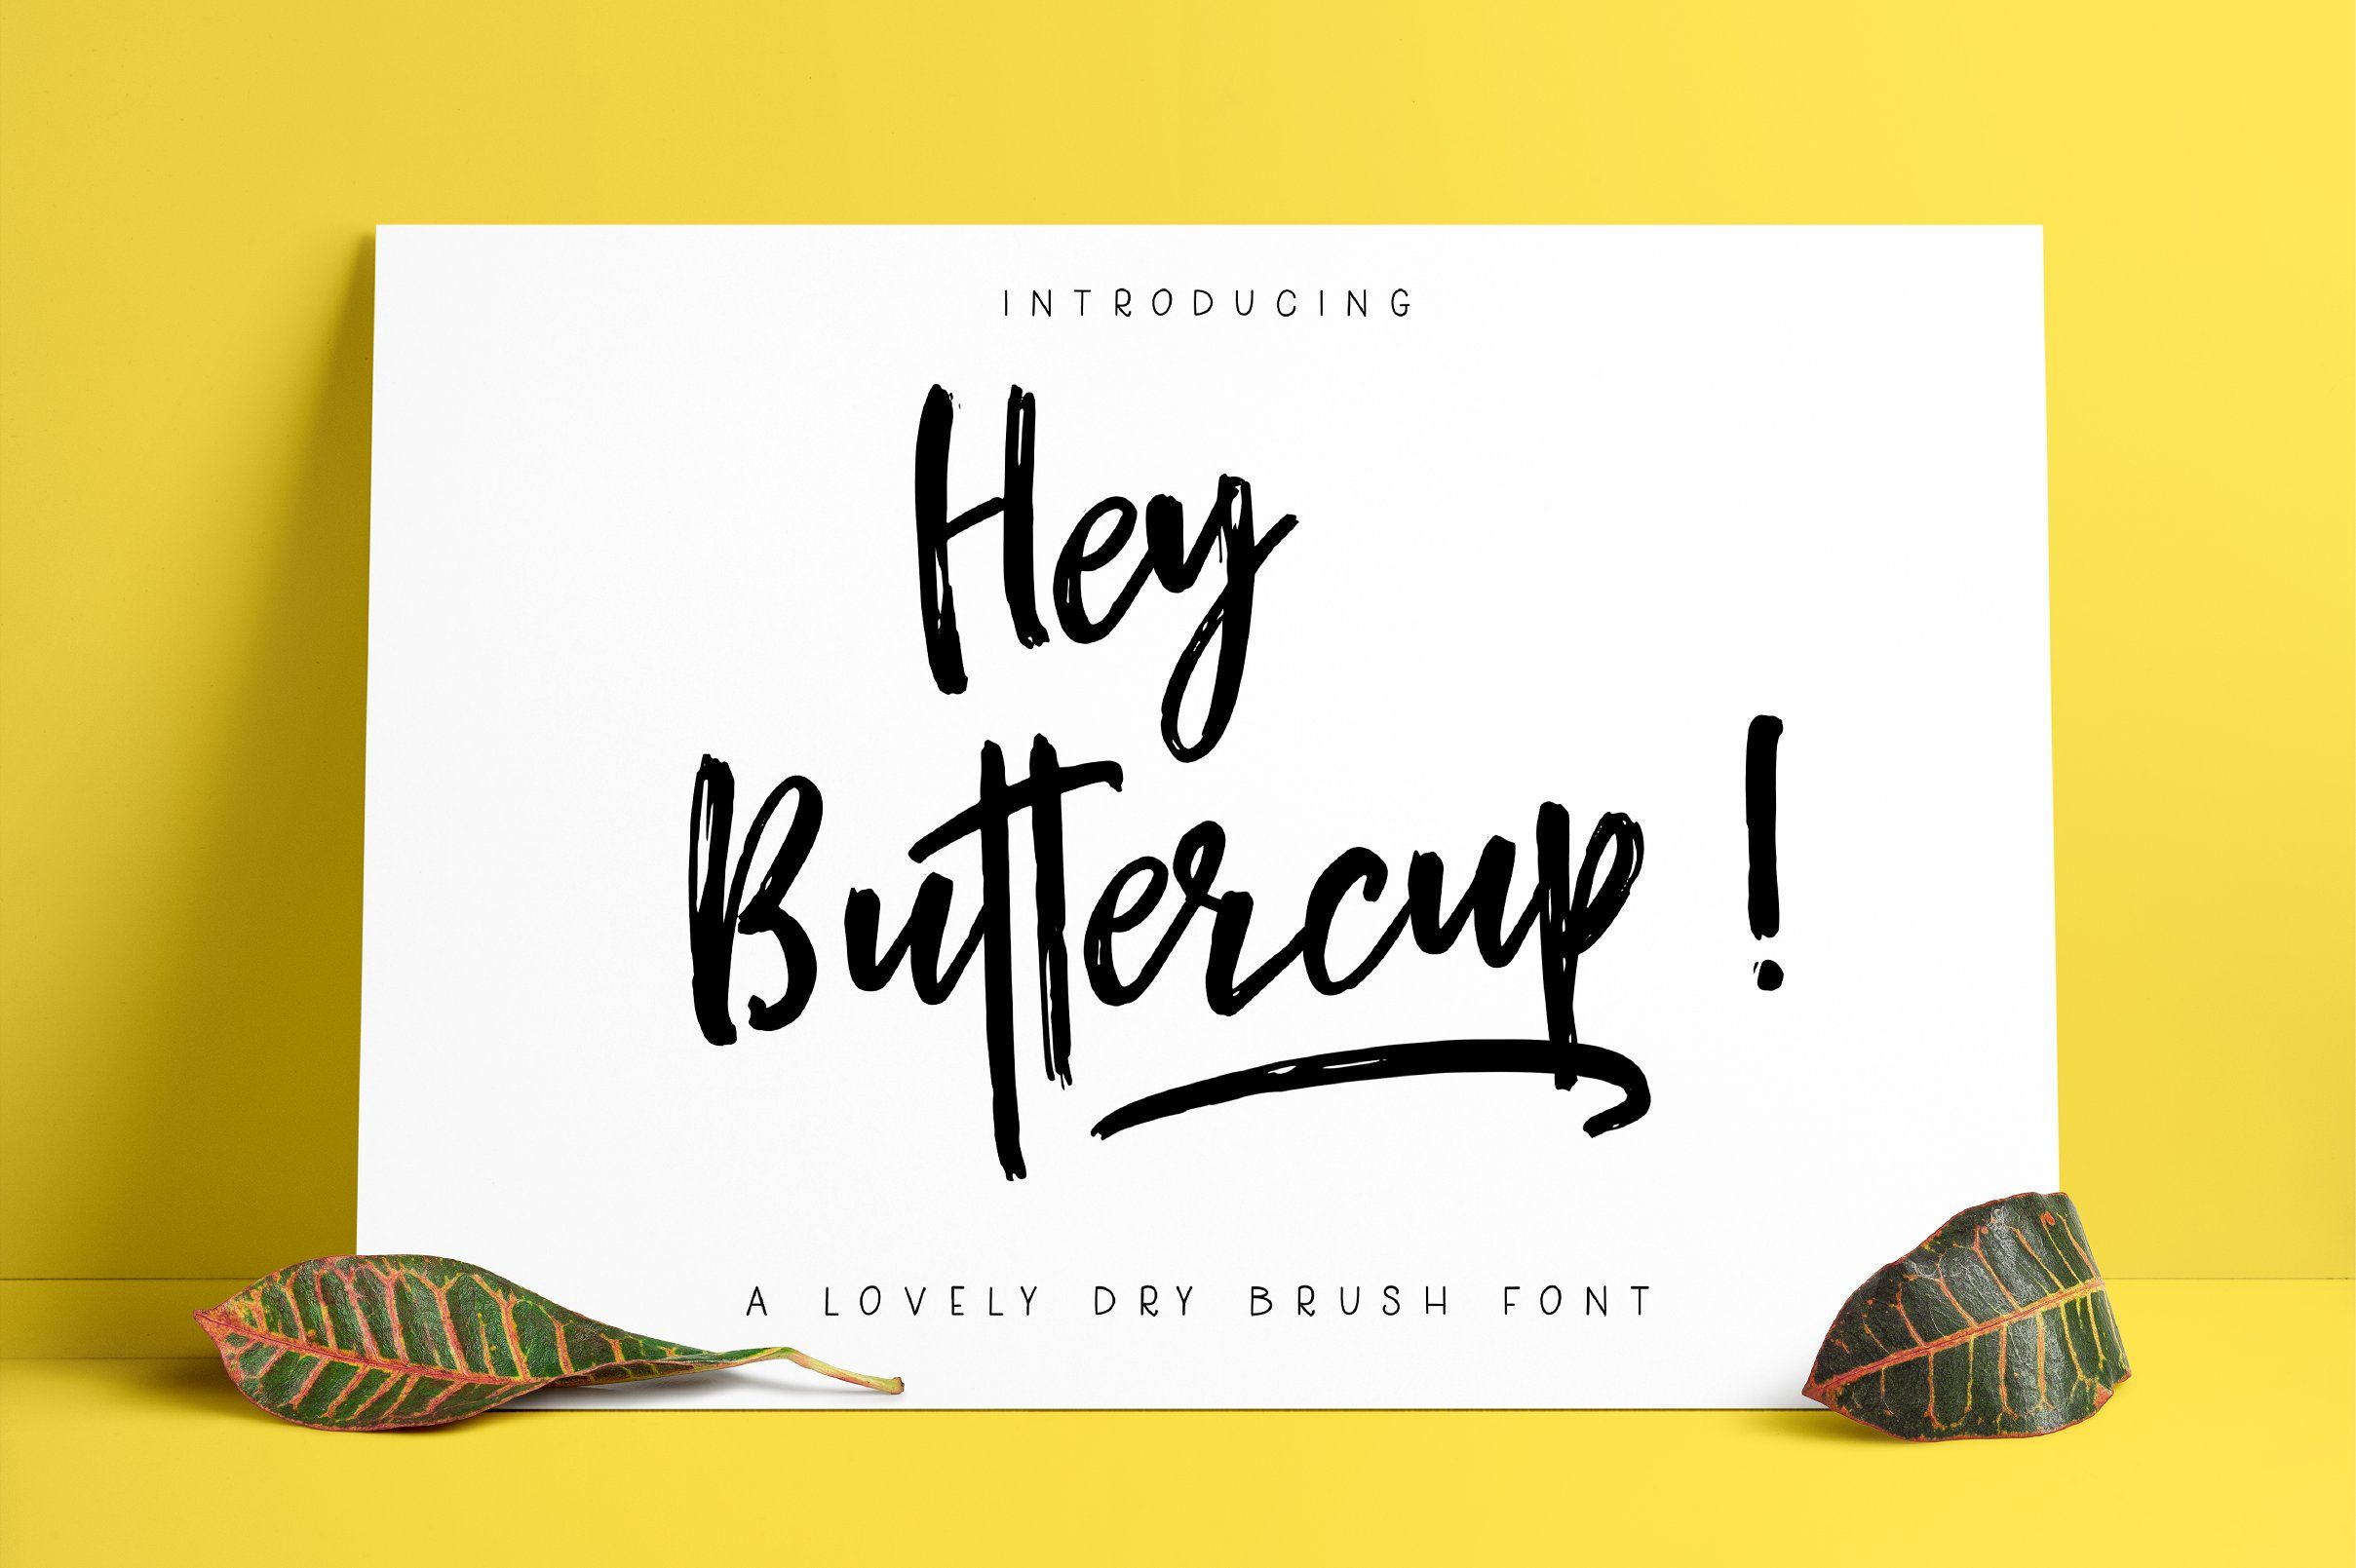 Hey buttercup font extras beautiful typography pinterest presenting hey buttercup a classy brush textured handwritten font with its quick brush strokes and cursive style hey buttercup makes for the perfect thecheapjerseys Images